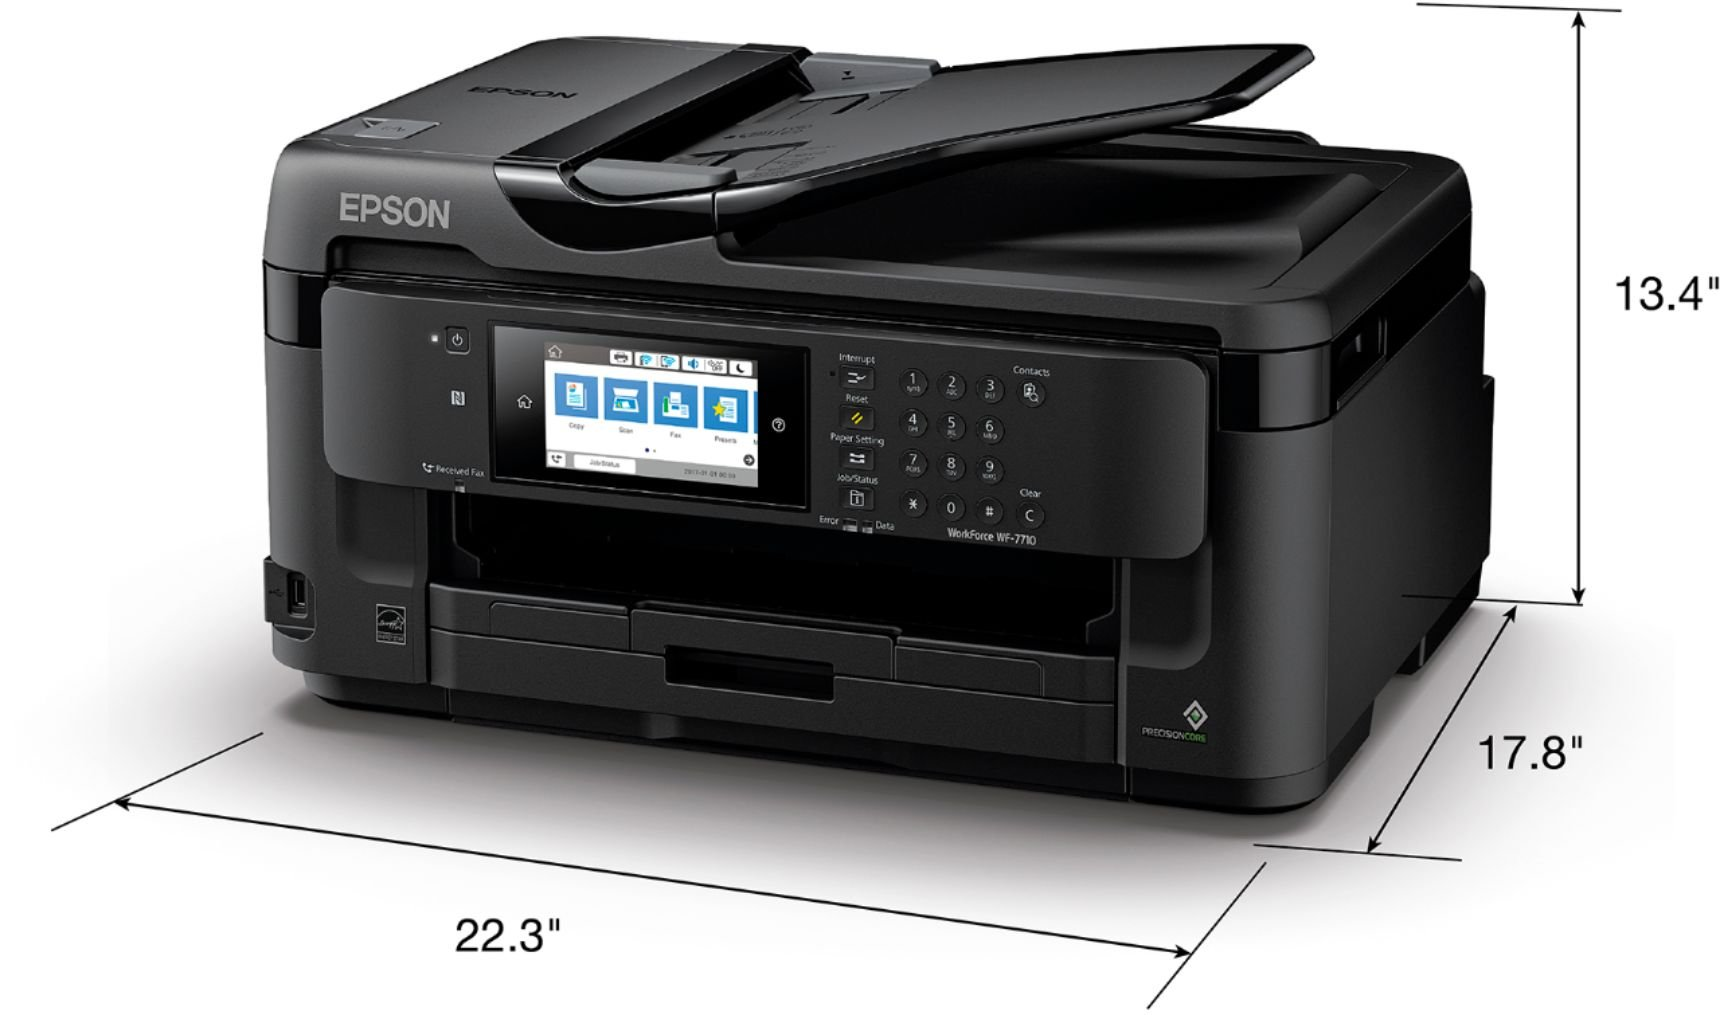 Epson WF-7710 Printer - Best printer for dye-sublimation printing